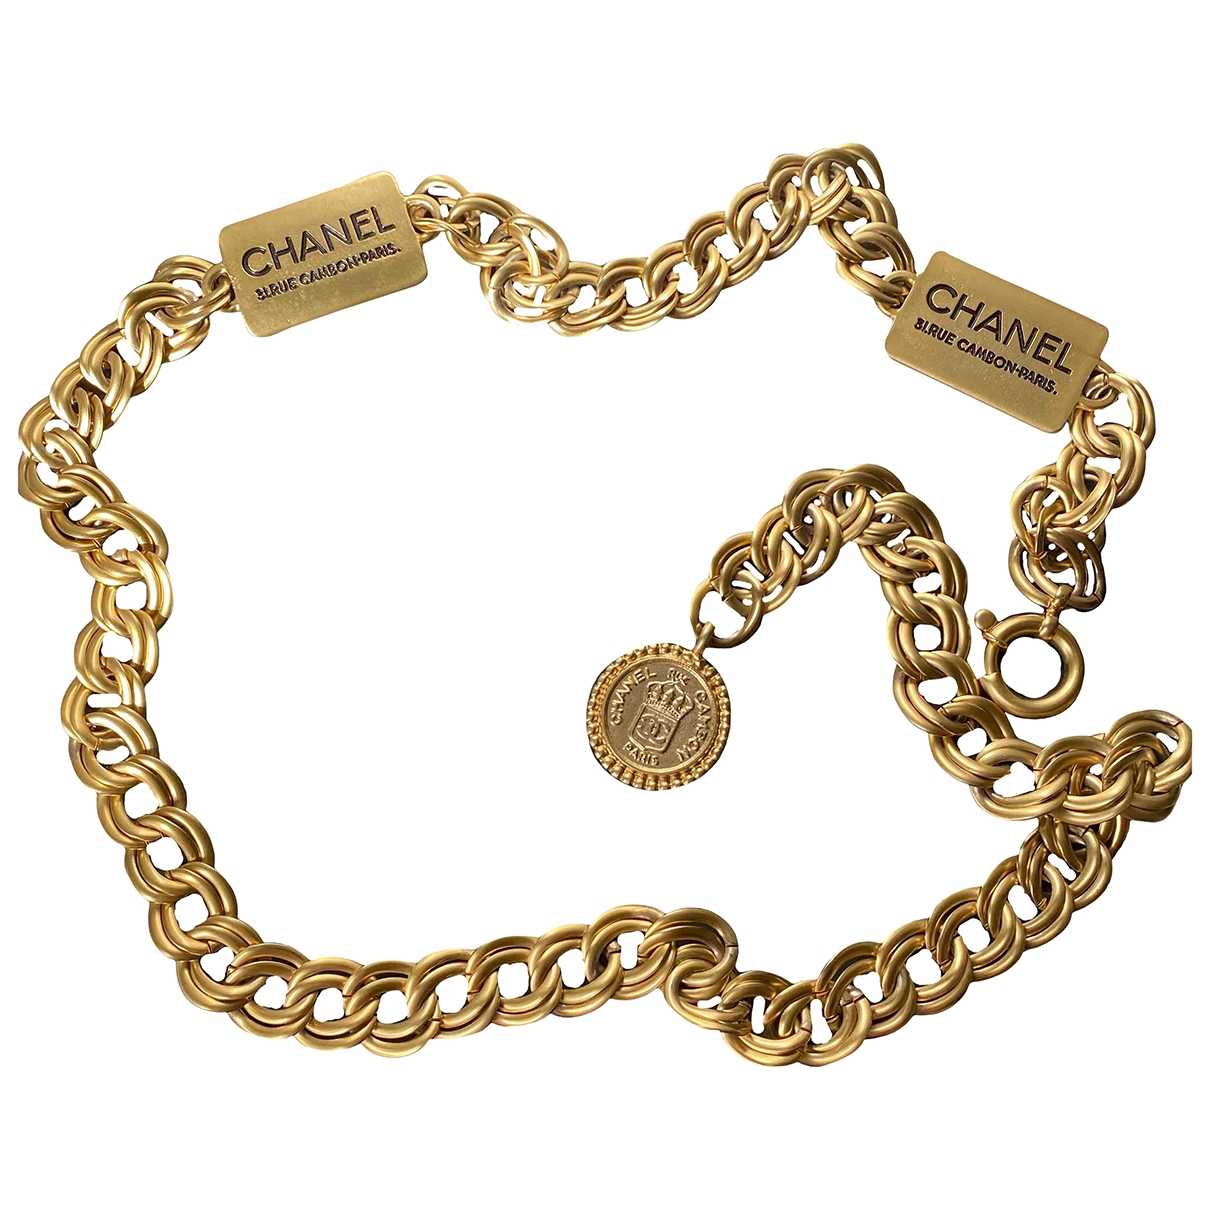 Chanel \N Gold Metal belt for Women M International